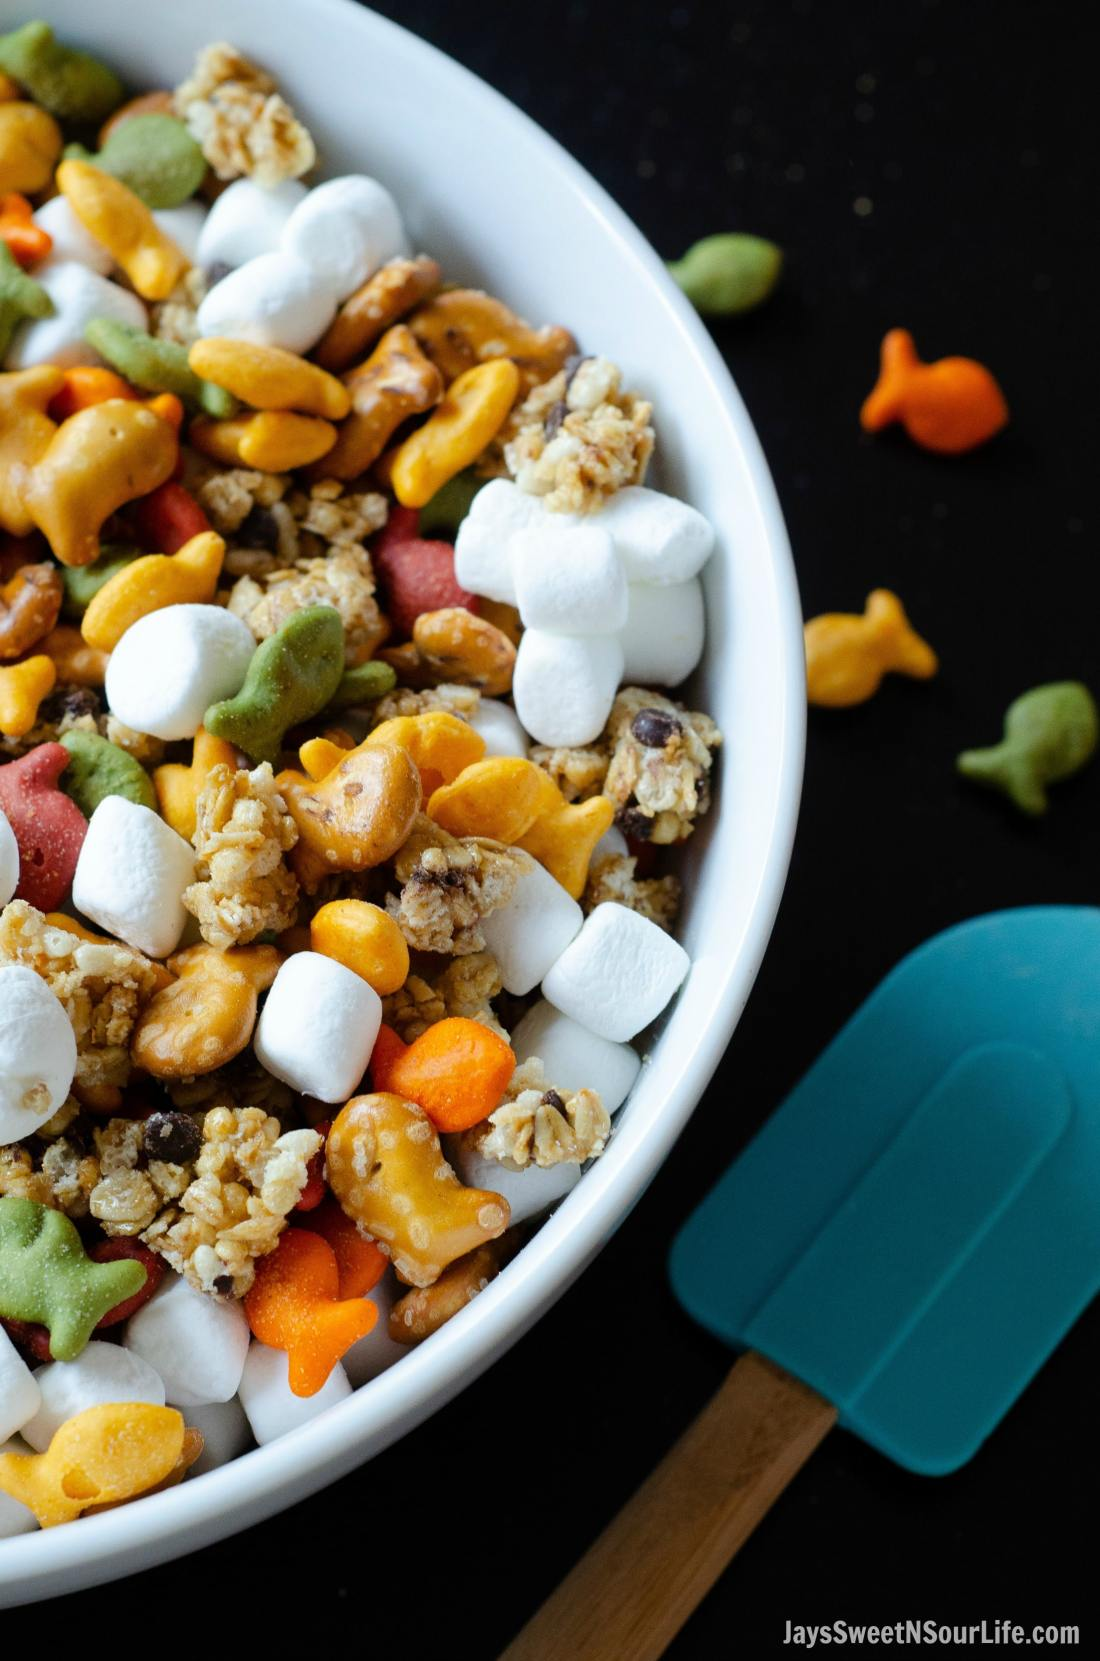 Goldfish crackers are my go-to snack! My families favorite on the go trail mix is sweet and oh so delicious. Try this Goldfish Trail Mix and take it on the go with your family to theme parks, parks, or your back yard.